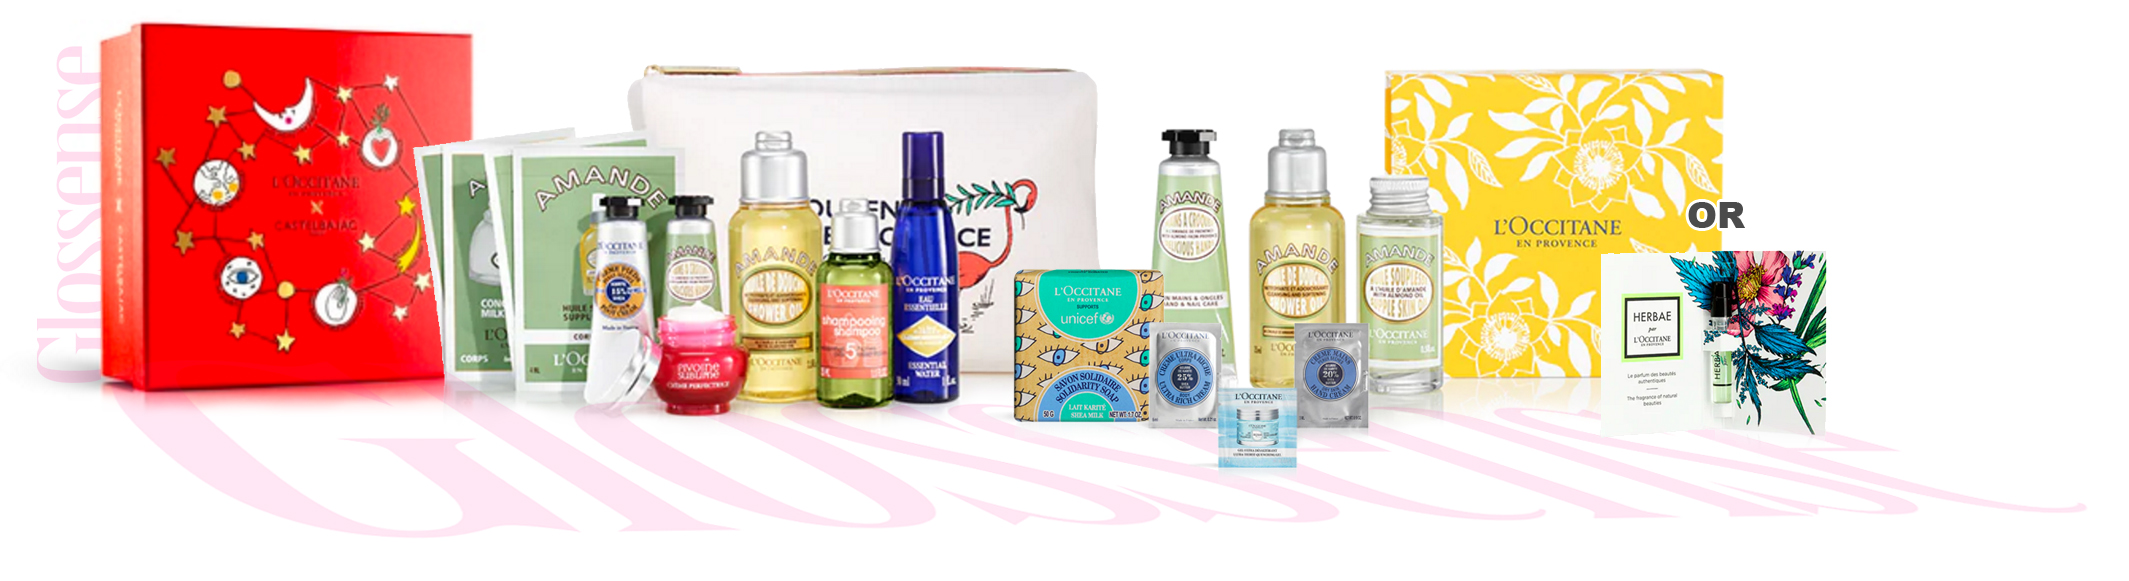 LOCCITANE CANADA HOT Spring Deal Details Free Canadian Shipping W Any 35 Order Glossense Beauty Deals Sales Coupons Freebies And More